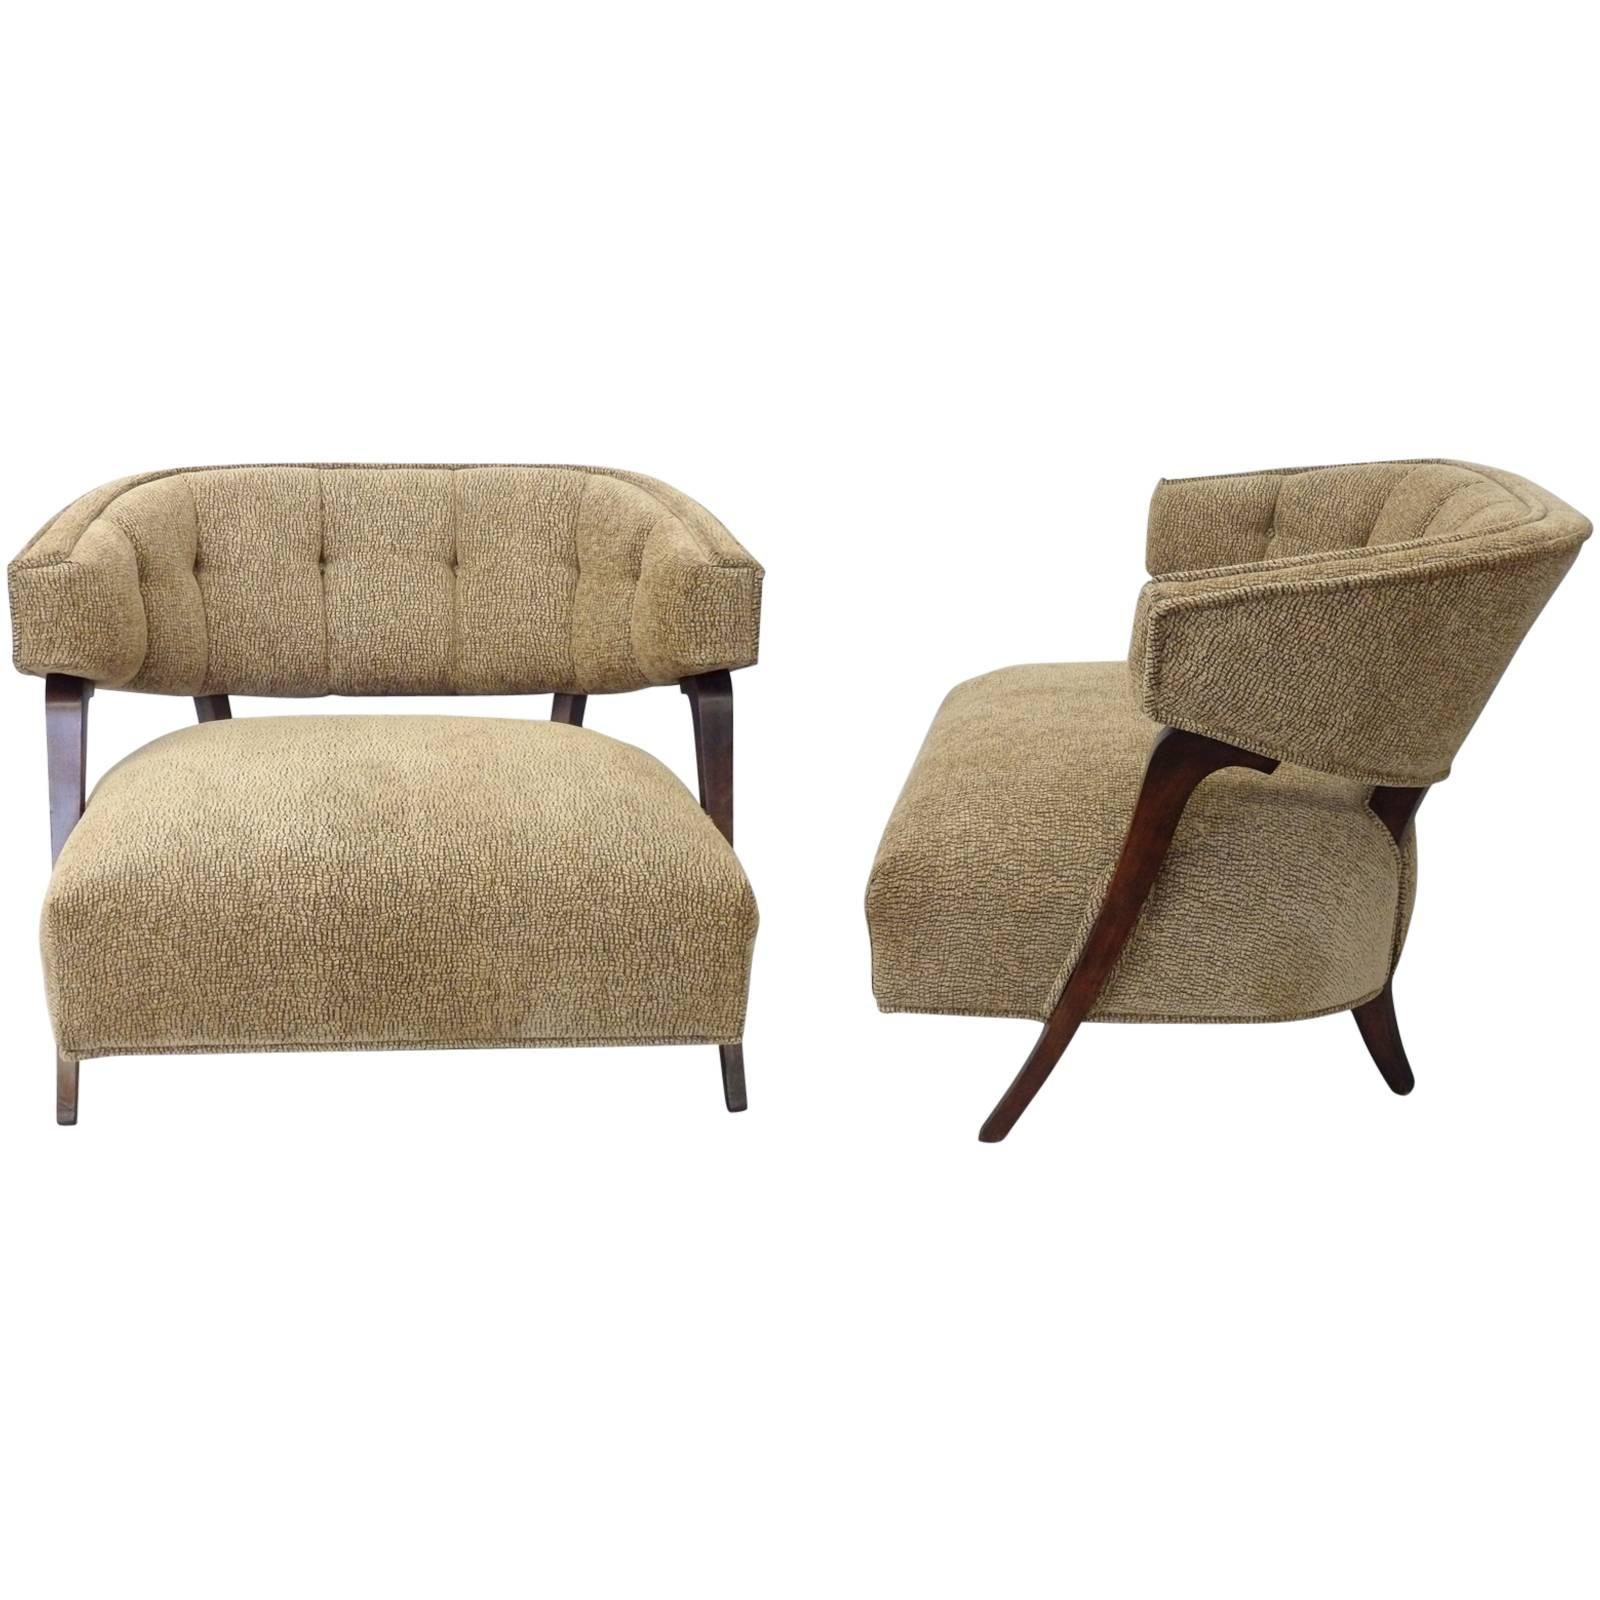 Pair of Large-Scale Button Tufted Billy Haines 1940's lux Style Lounge Chairs